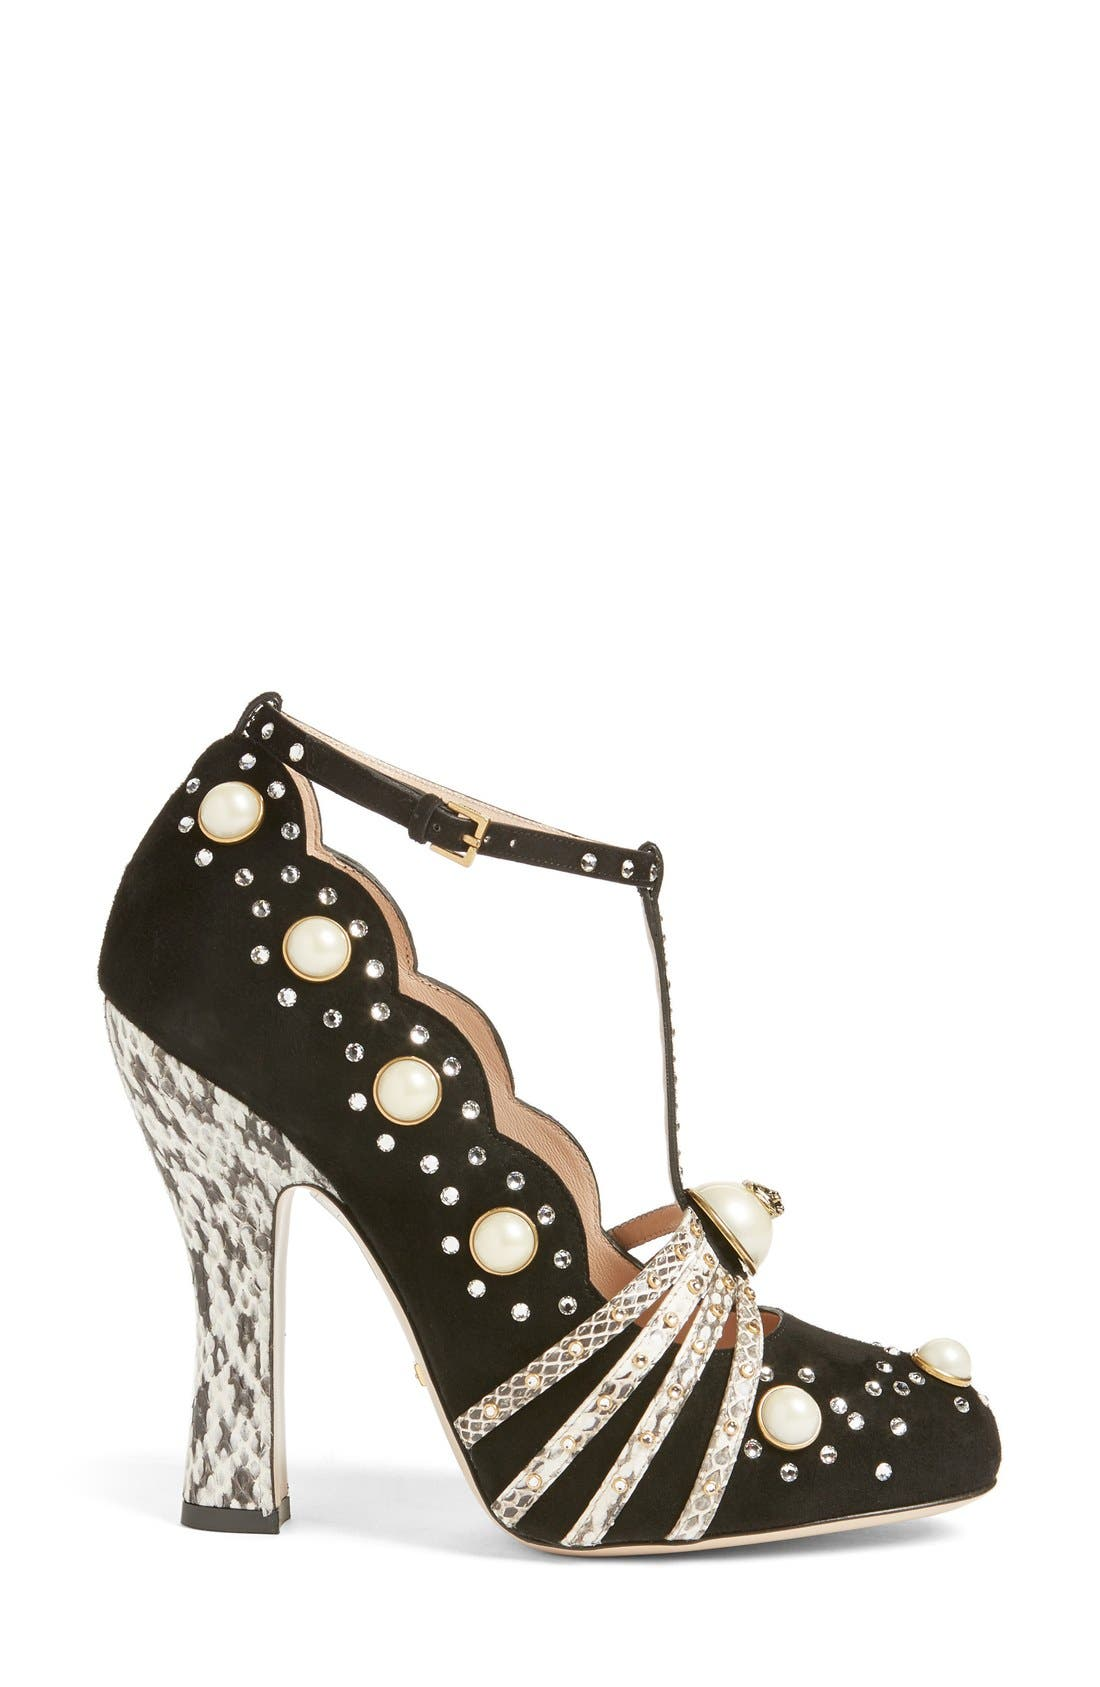 Ofelia Pearly Crystal Embellished Pump,                             Alternate thumbnail 4, color,                             Black